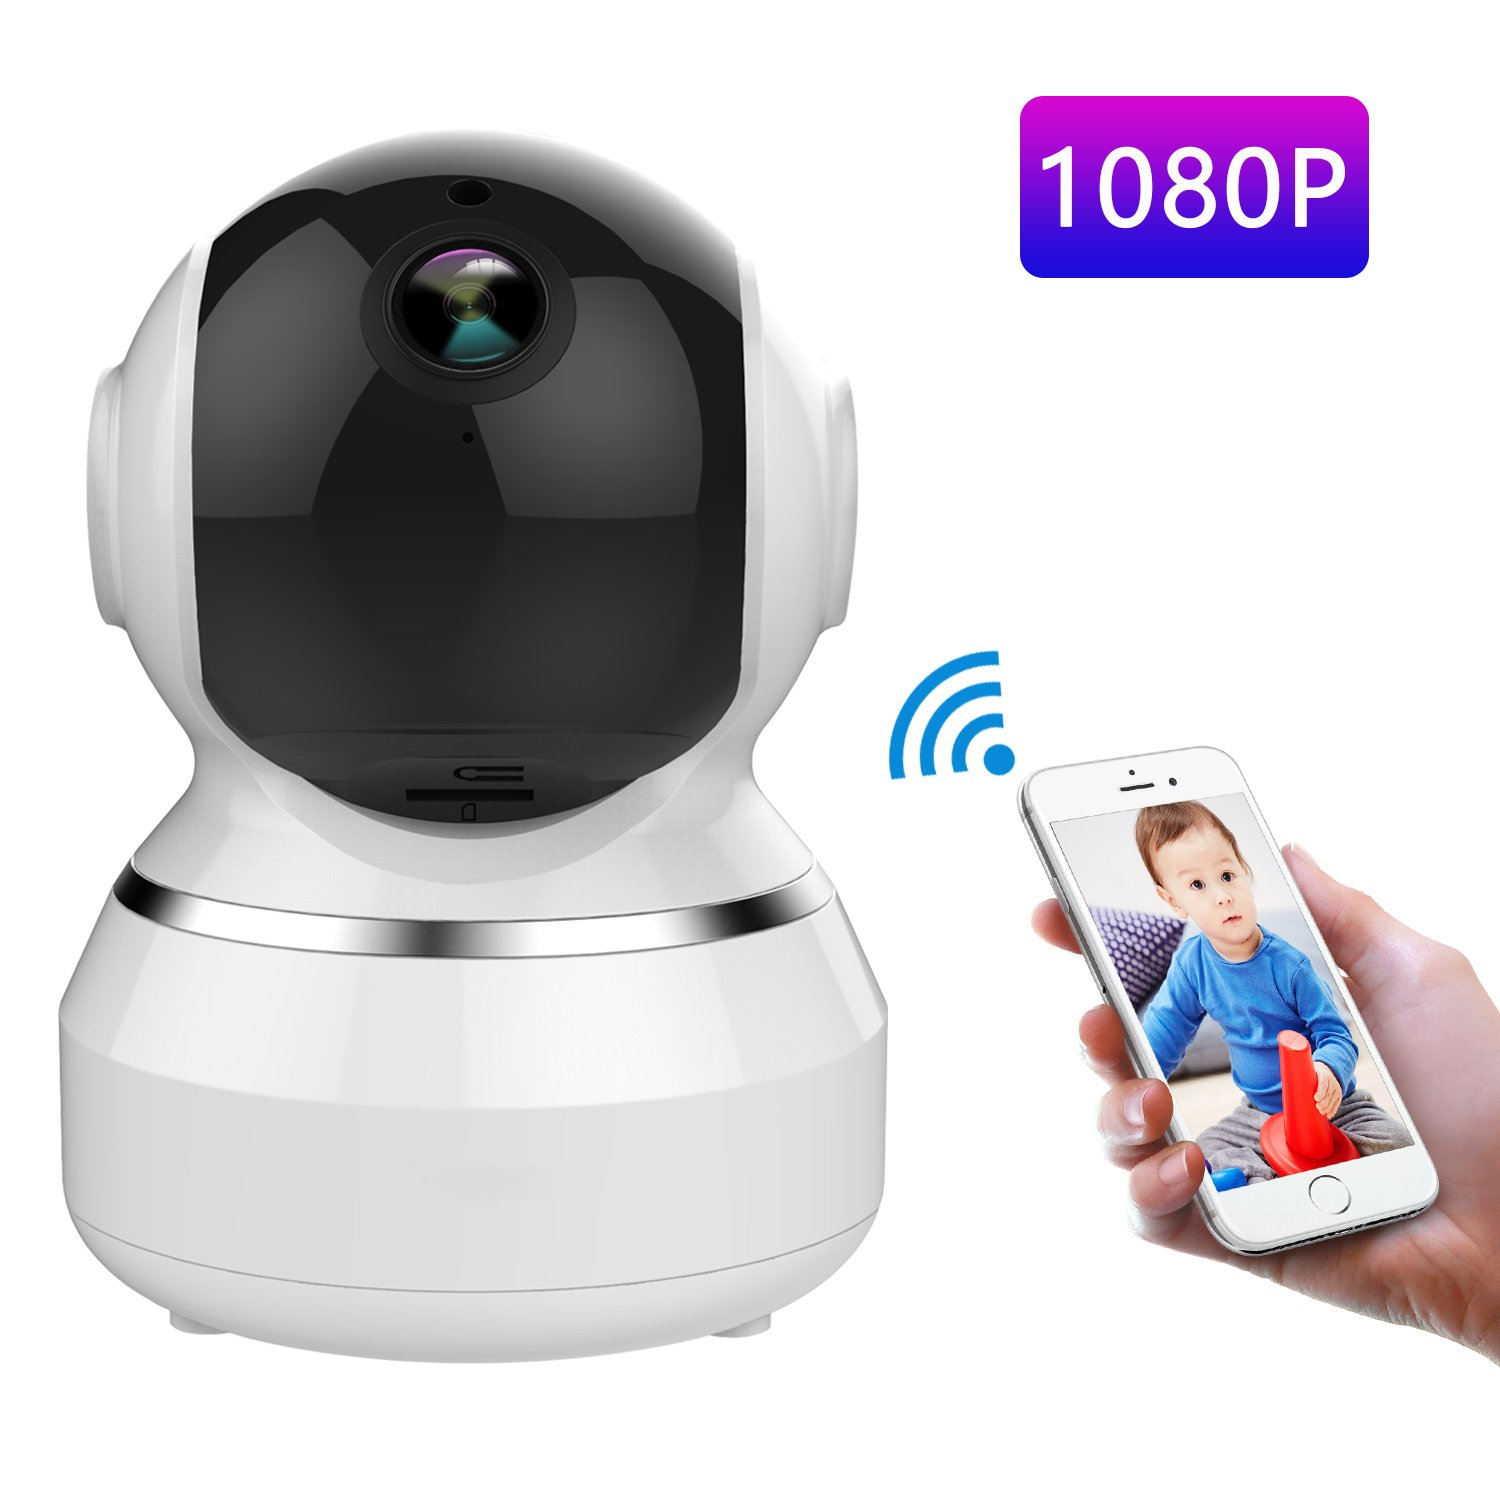 WONNIE 1080P HD WiFi IP Camera Wireless Indoor Camera with 2-Way Audio, Night Vision and Motion Detection, Home Security Surveillance Pan/Tilt/Zoom Monitor for Baby/Elder/Pet (White)